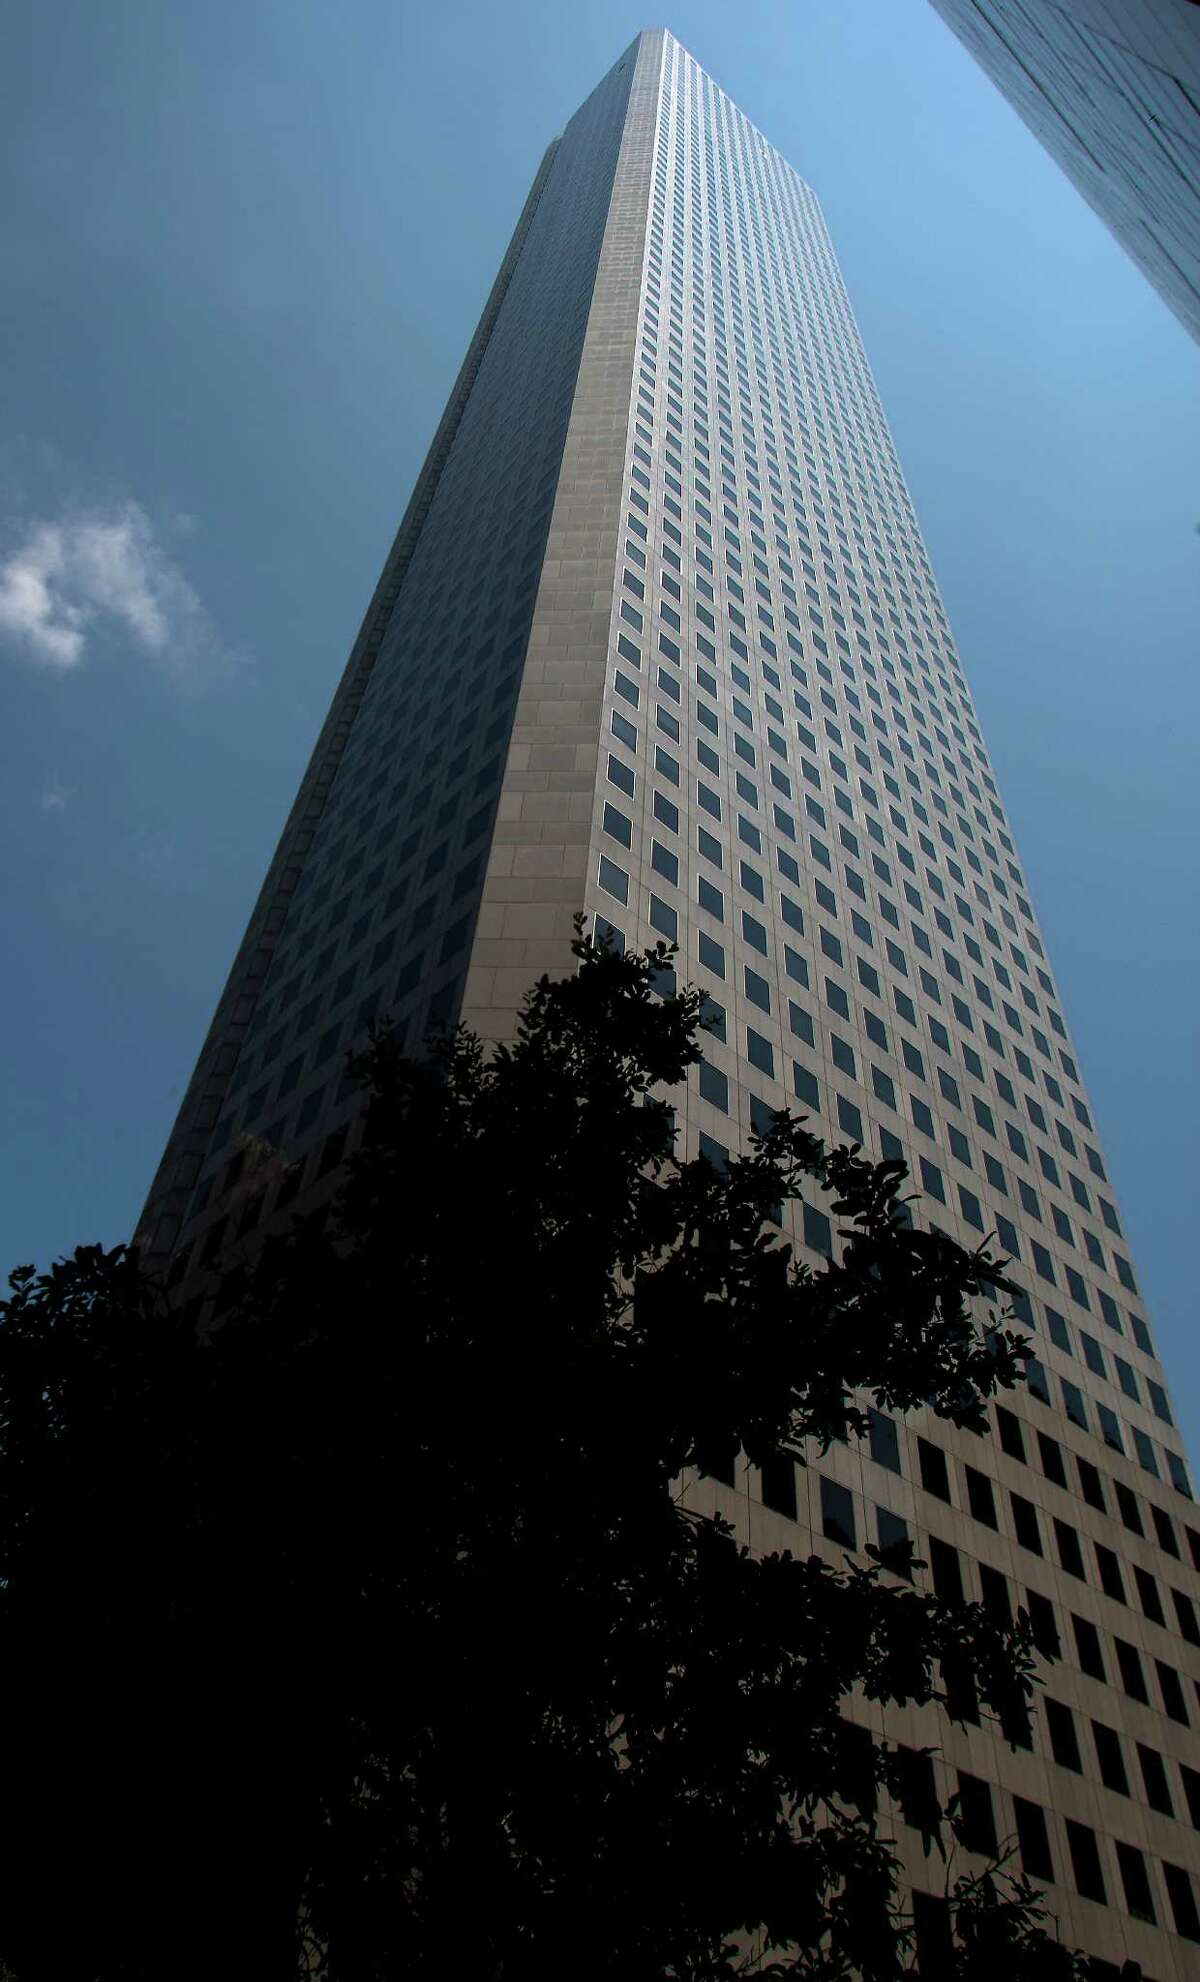 At 75 stories, JPMorgan Chase Tower stands 1,002 feet tall. It was built in 1981.